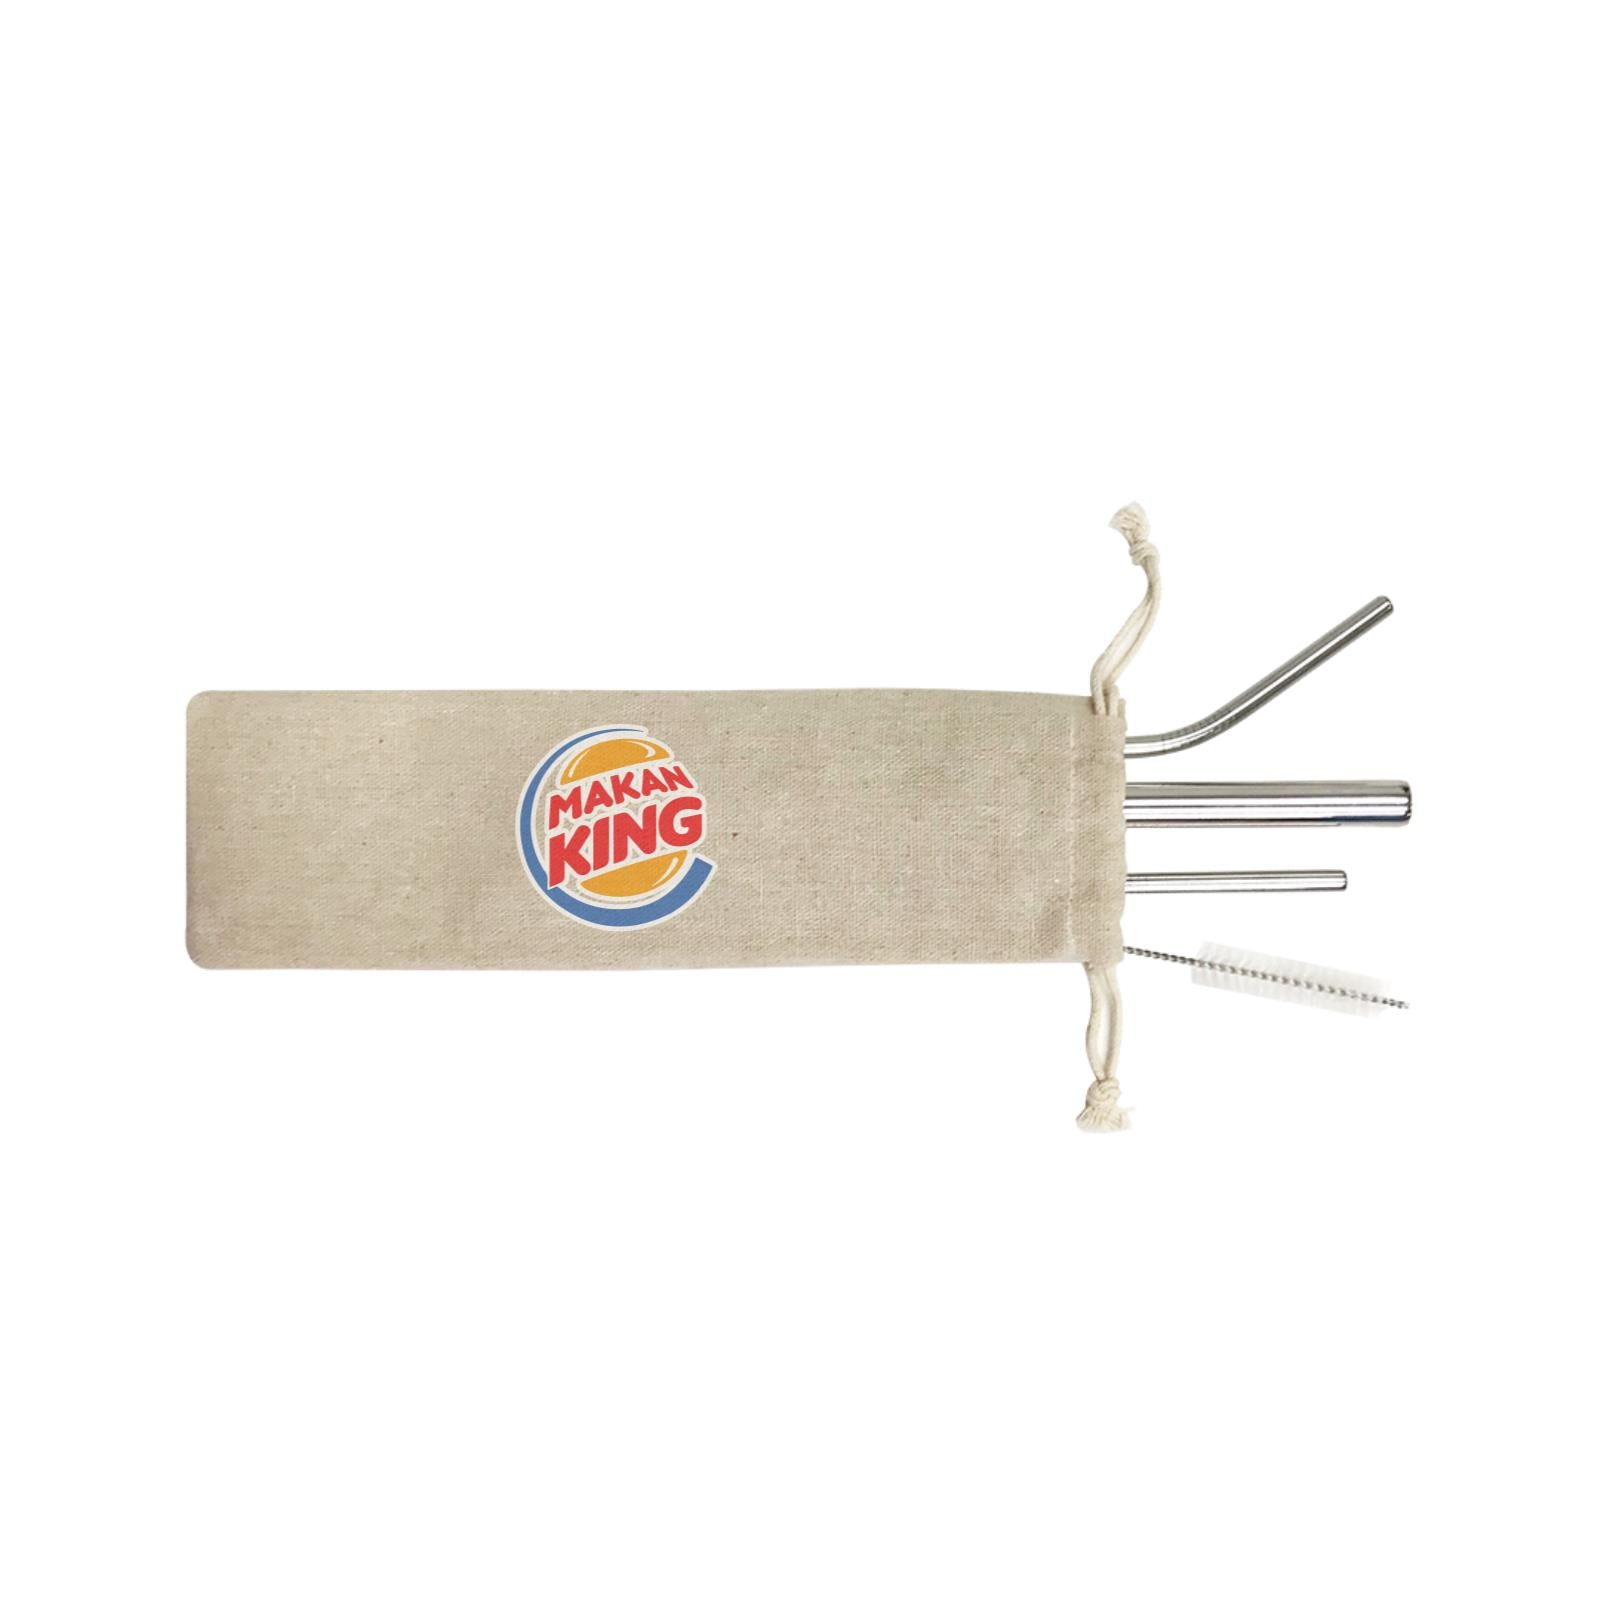 Slang Statement Makan King 4-in-1 Stainless Steel Straw Set In a Satchel